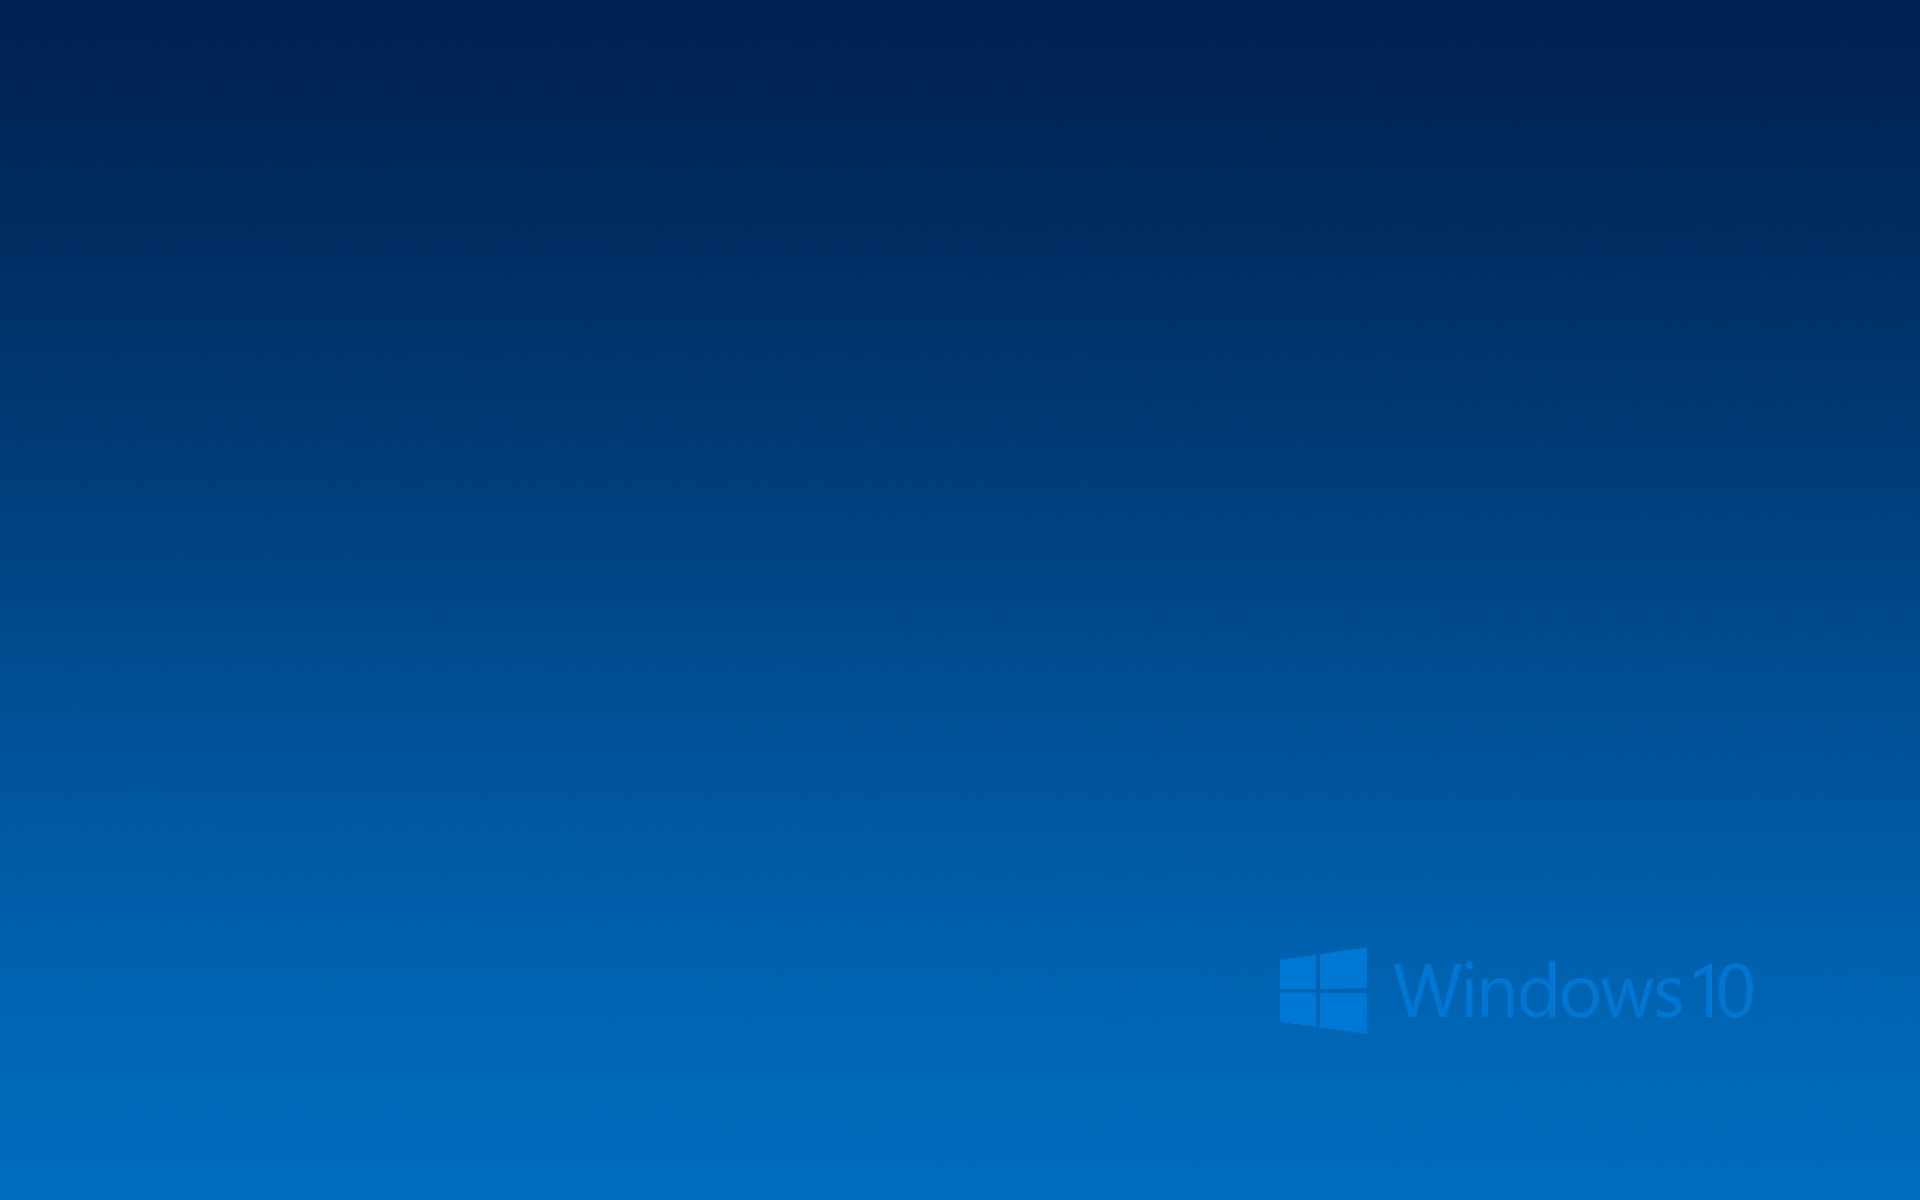 Windows 10 025 Logo, Blue